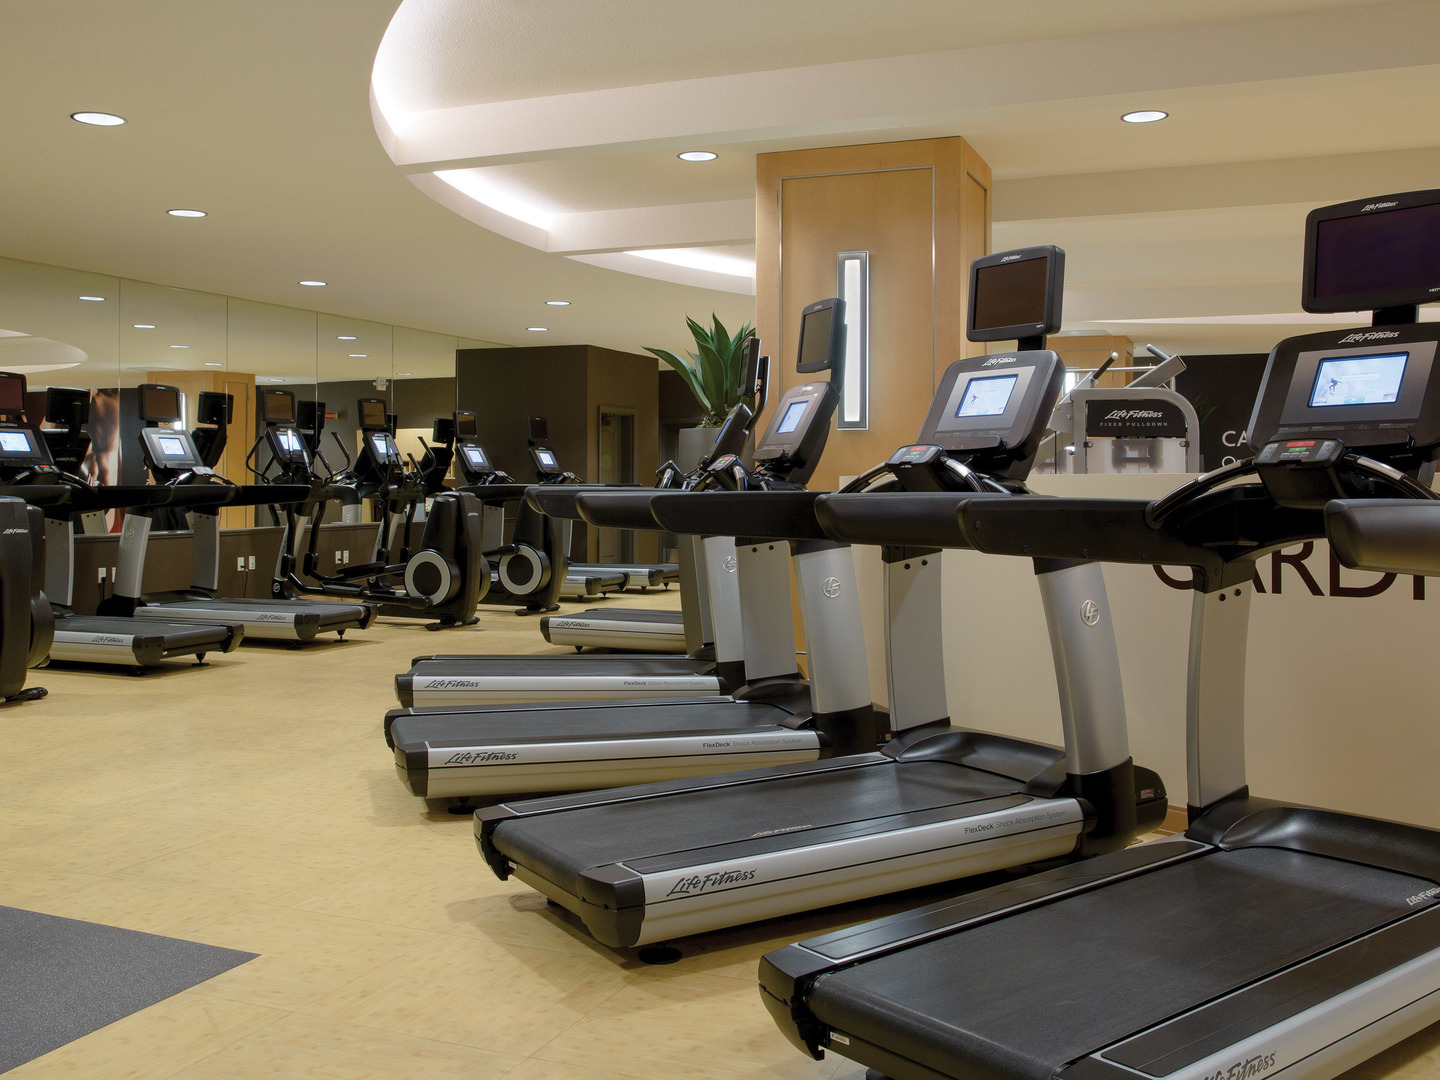 Marriott's Grand Chateau<span class='trademark'>®</span> Fitness Center. Marriott's Grand Chateau<span class='trademark'>®</span> is located in Las Vegas, Nevada United States.